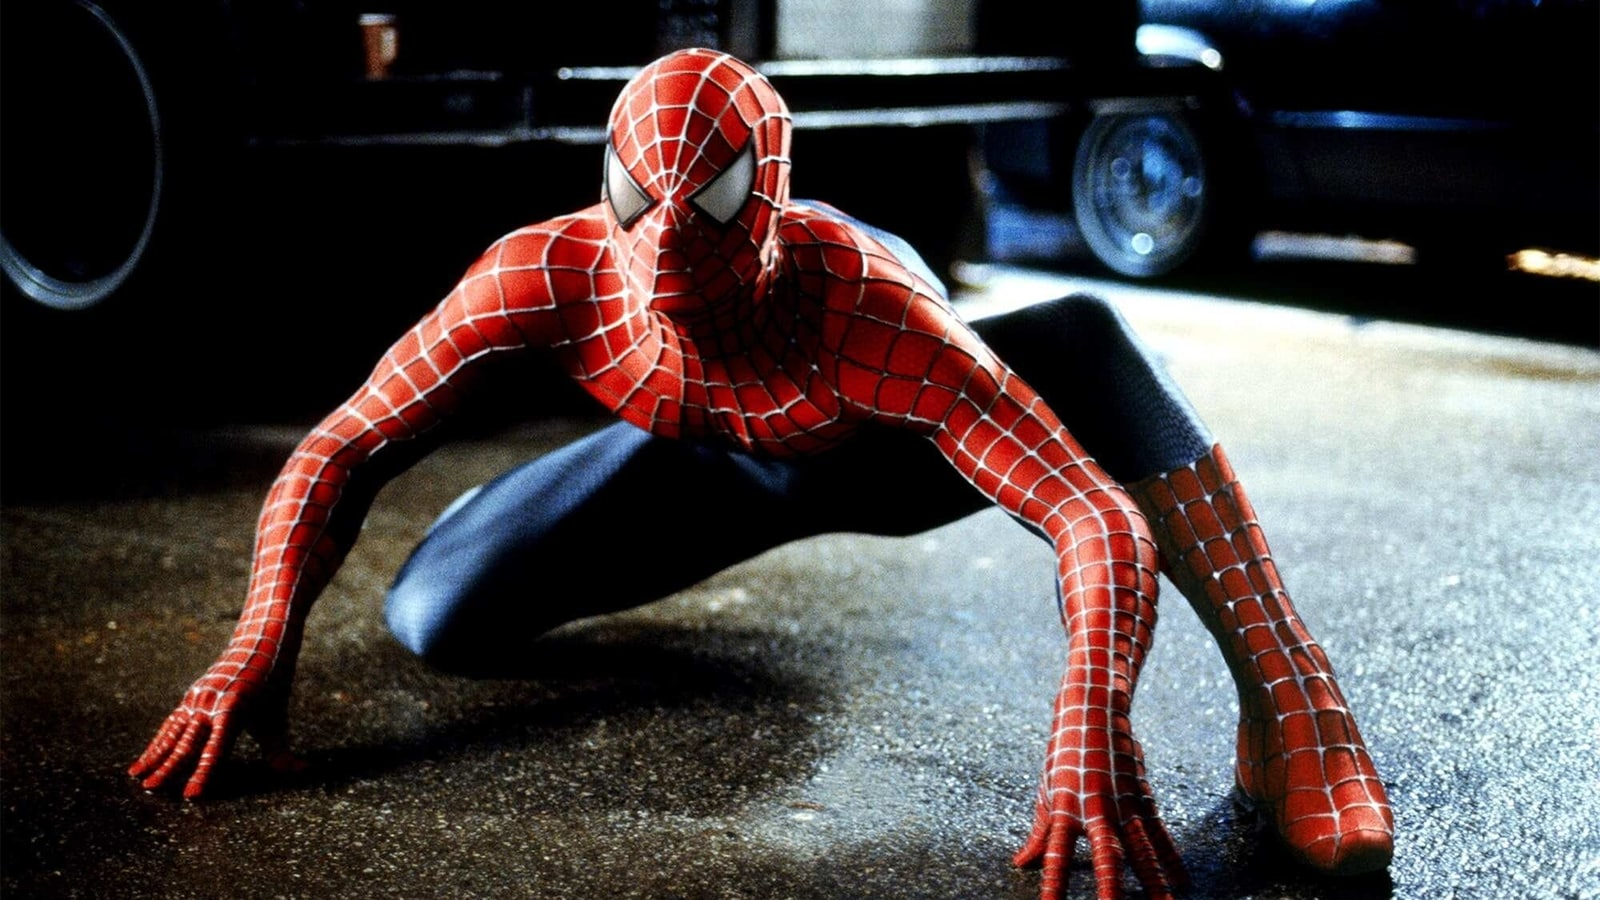 Netflix acquires Spider-Man in Sony's multi-year contract